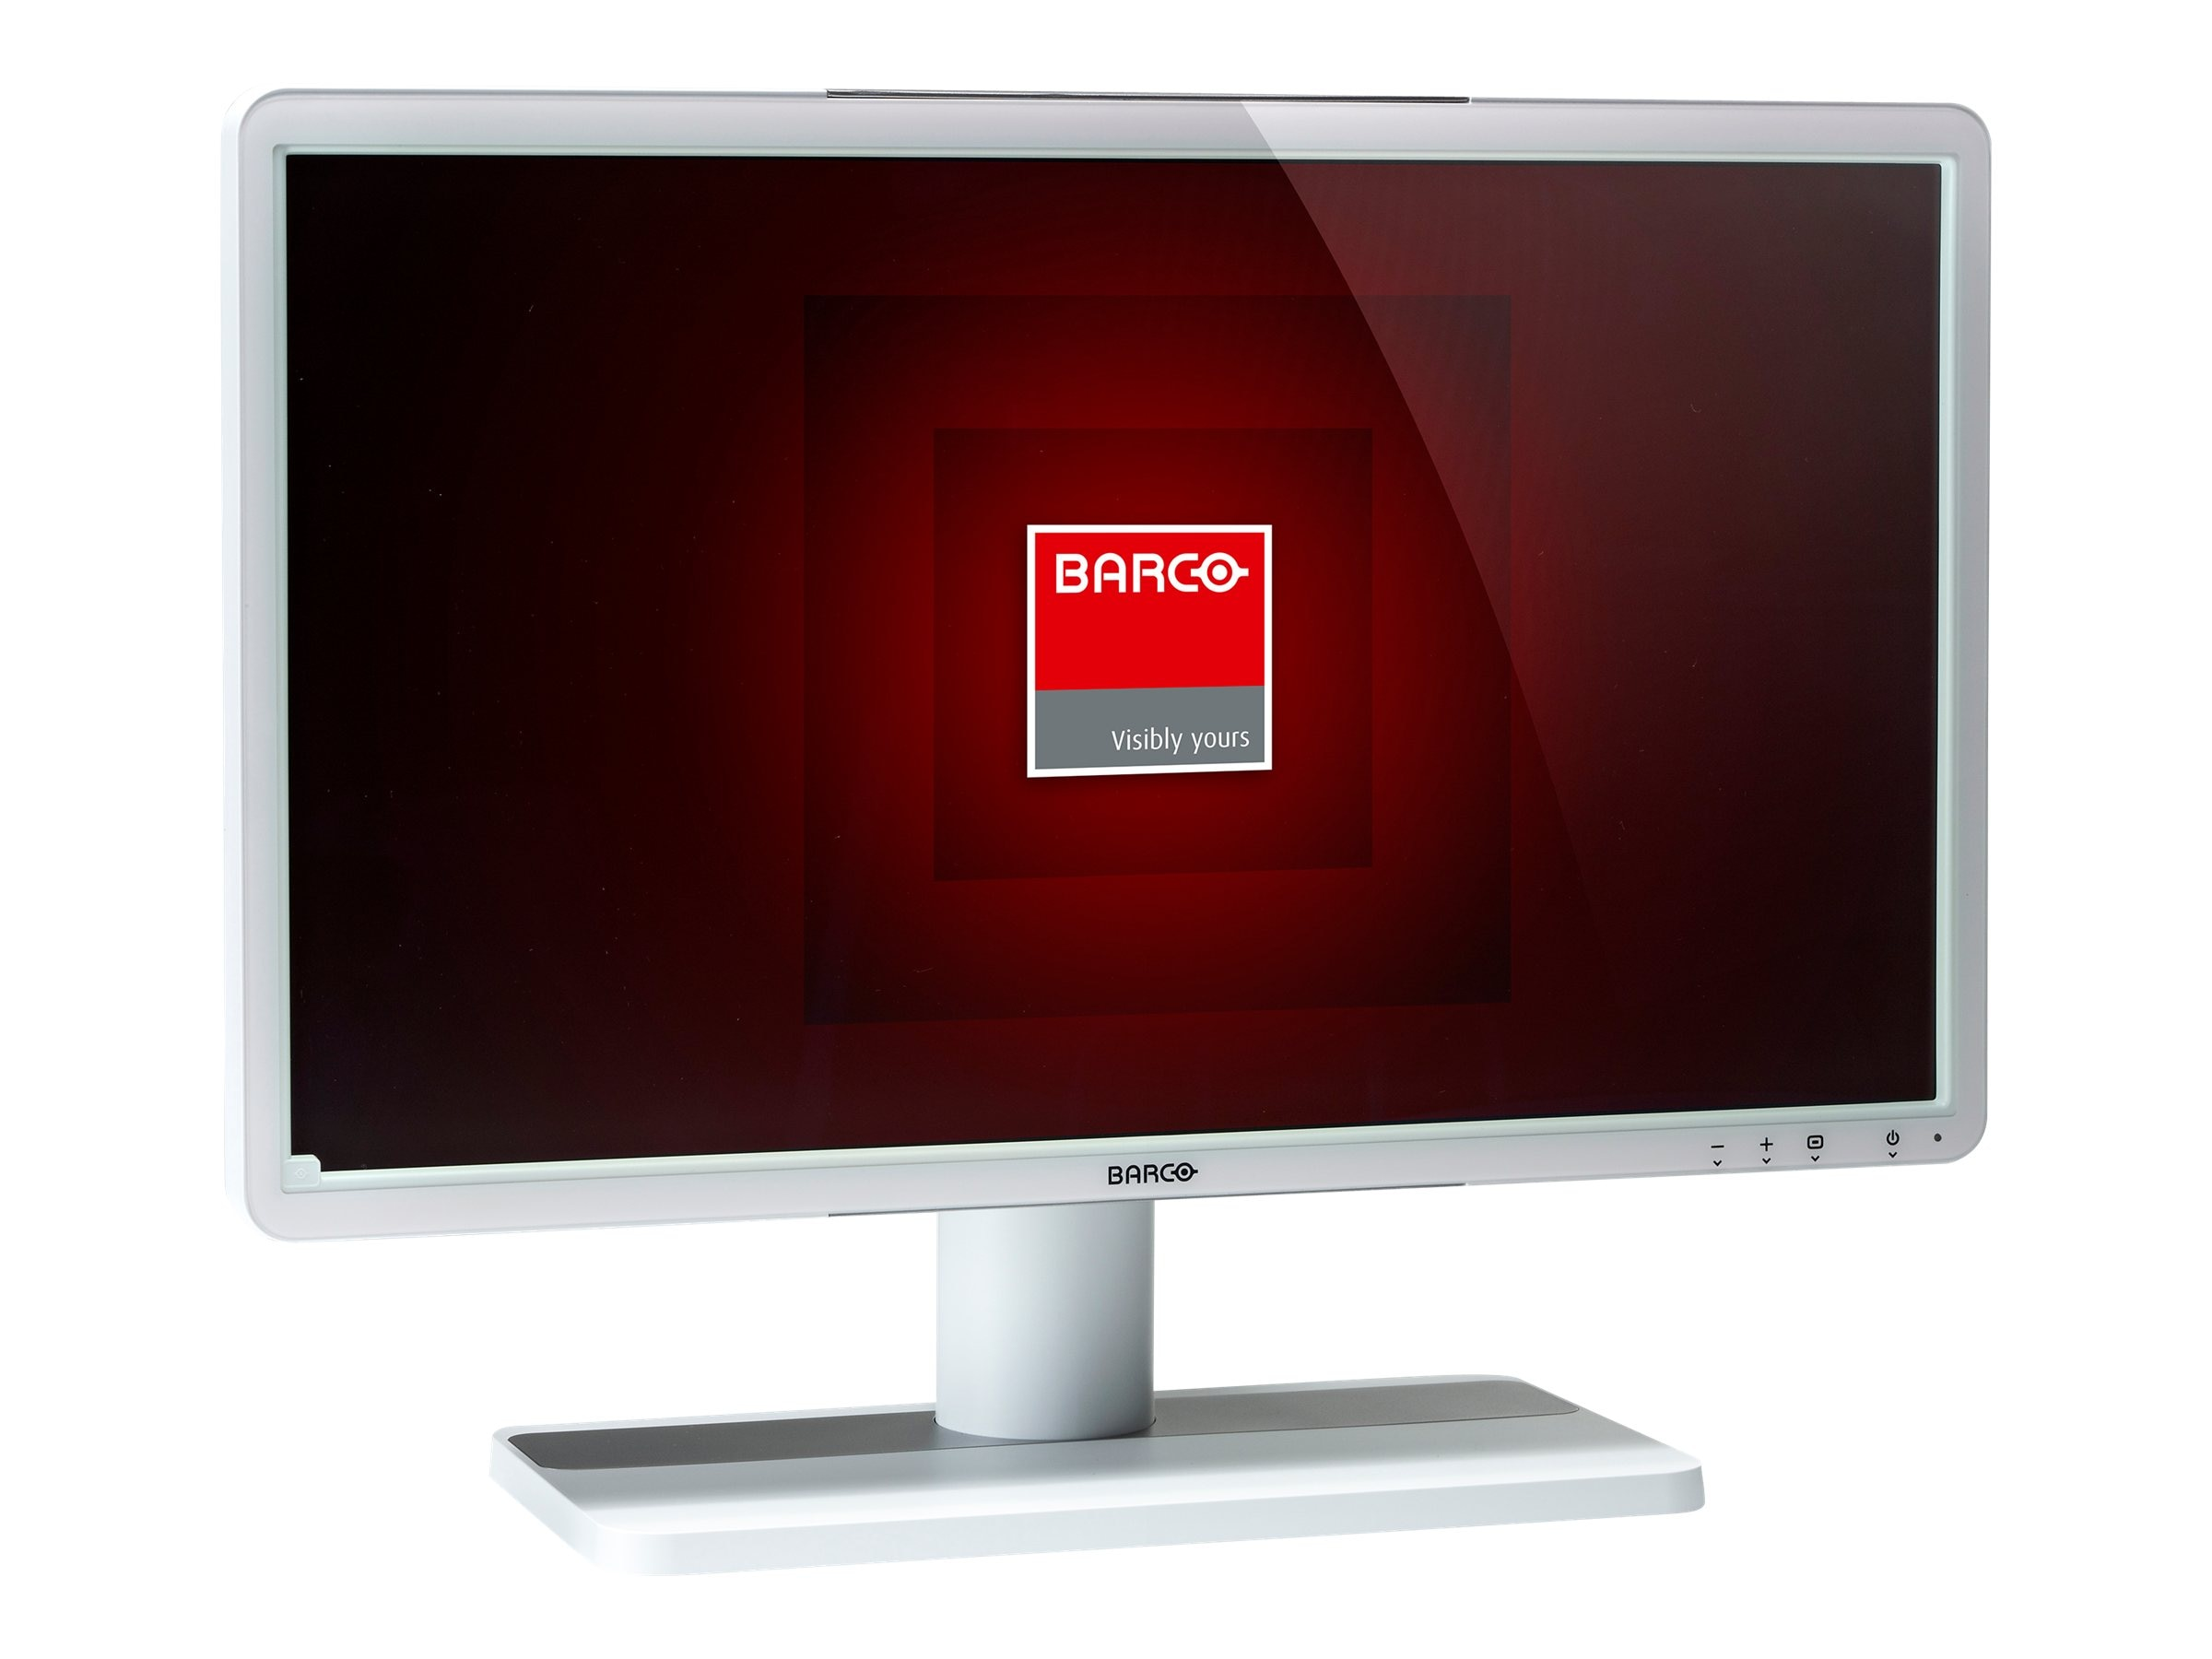 Barco 21.5 Eonis 2MP Full HD LED-LCD Monitor, White